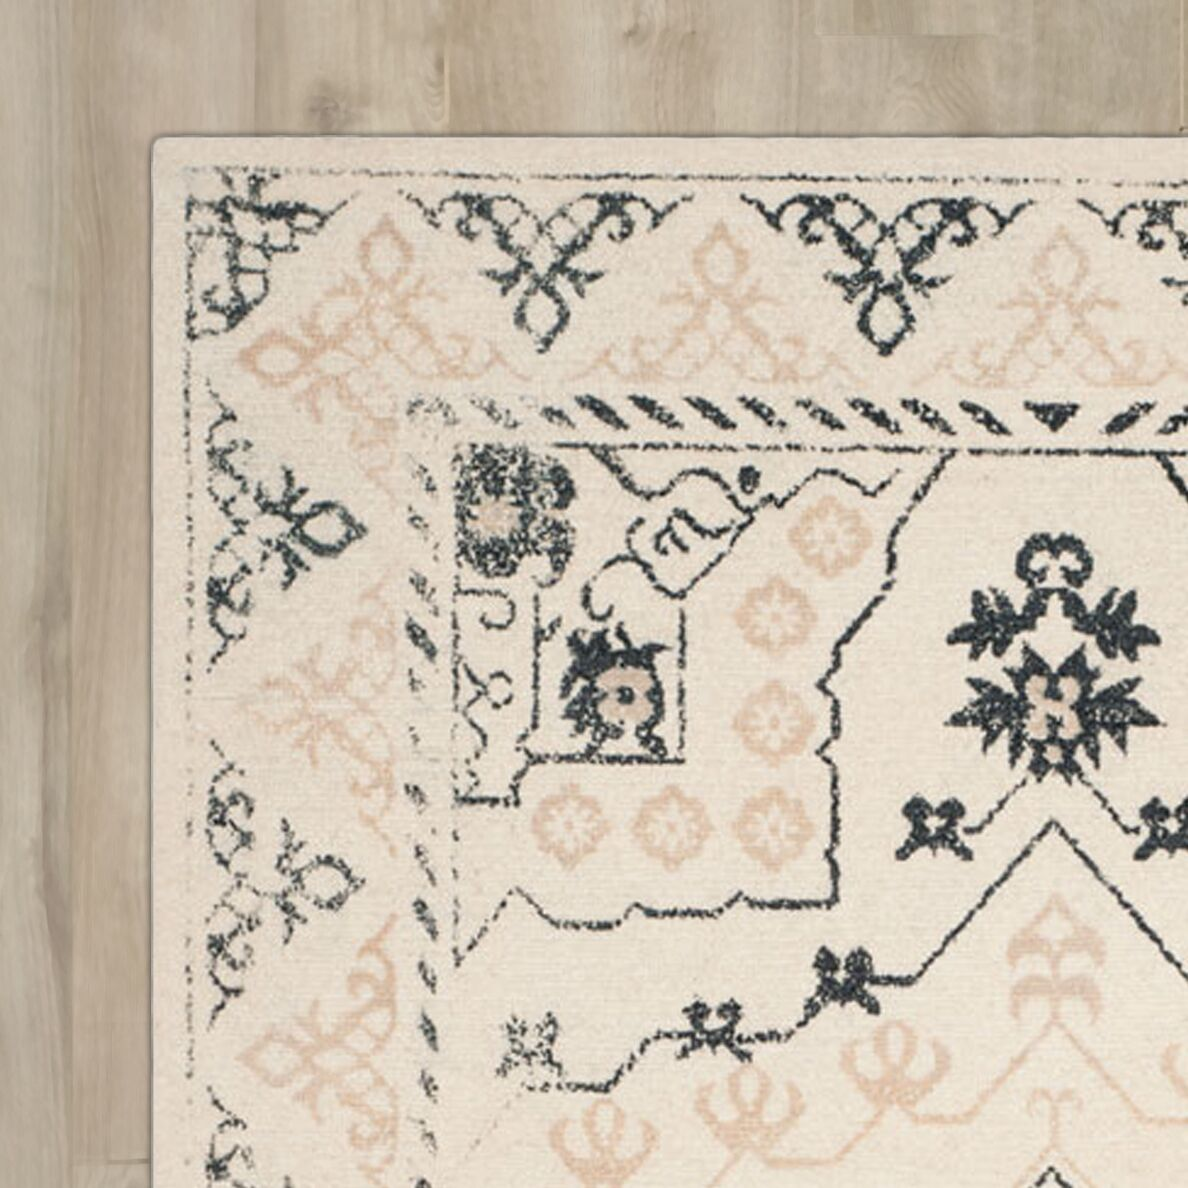 Driffield Hand-Tufted Ivory/Charcoal Area Rug Rug Size: Square 6' x 6'